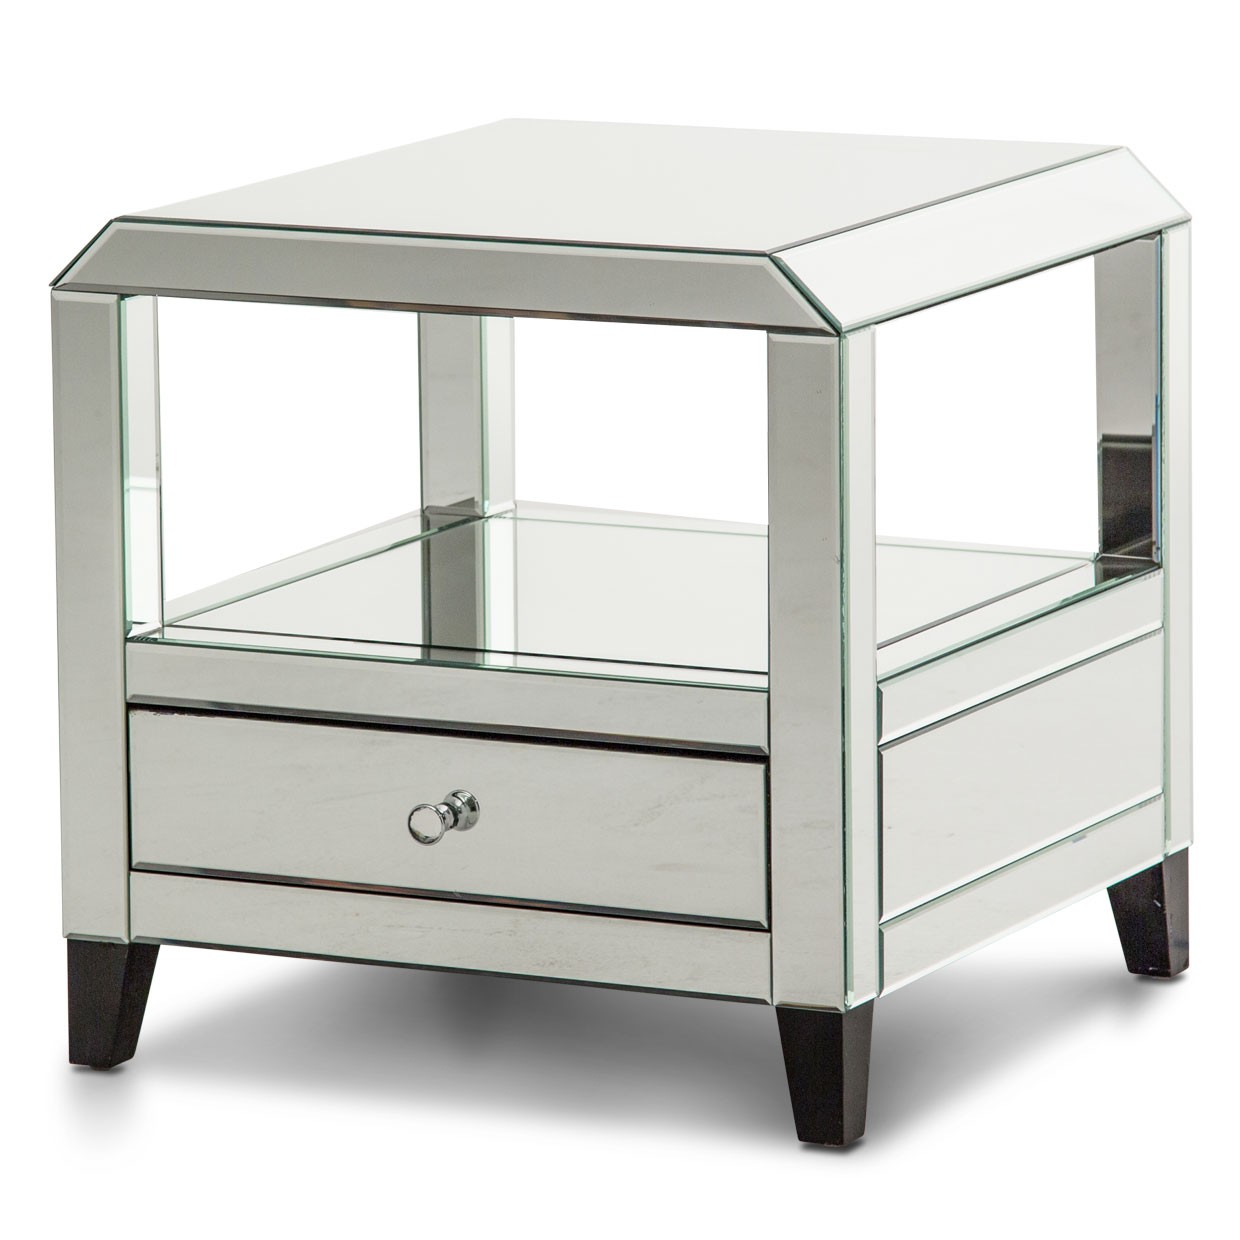 montreal mirrored square accent table drawer with tall end tables ikea babcock furniture website metal bedroom antique shipping trunk coffee under lamp small pine side flowers